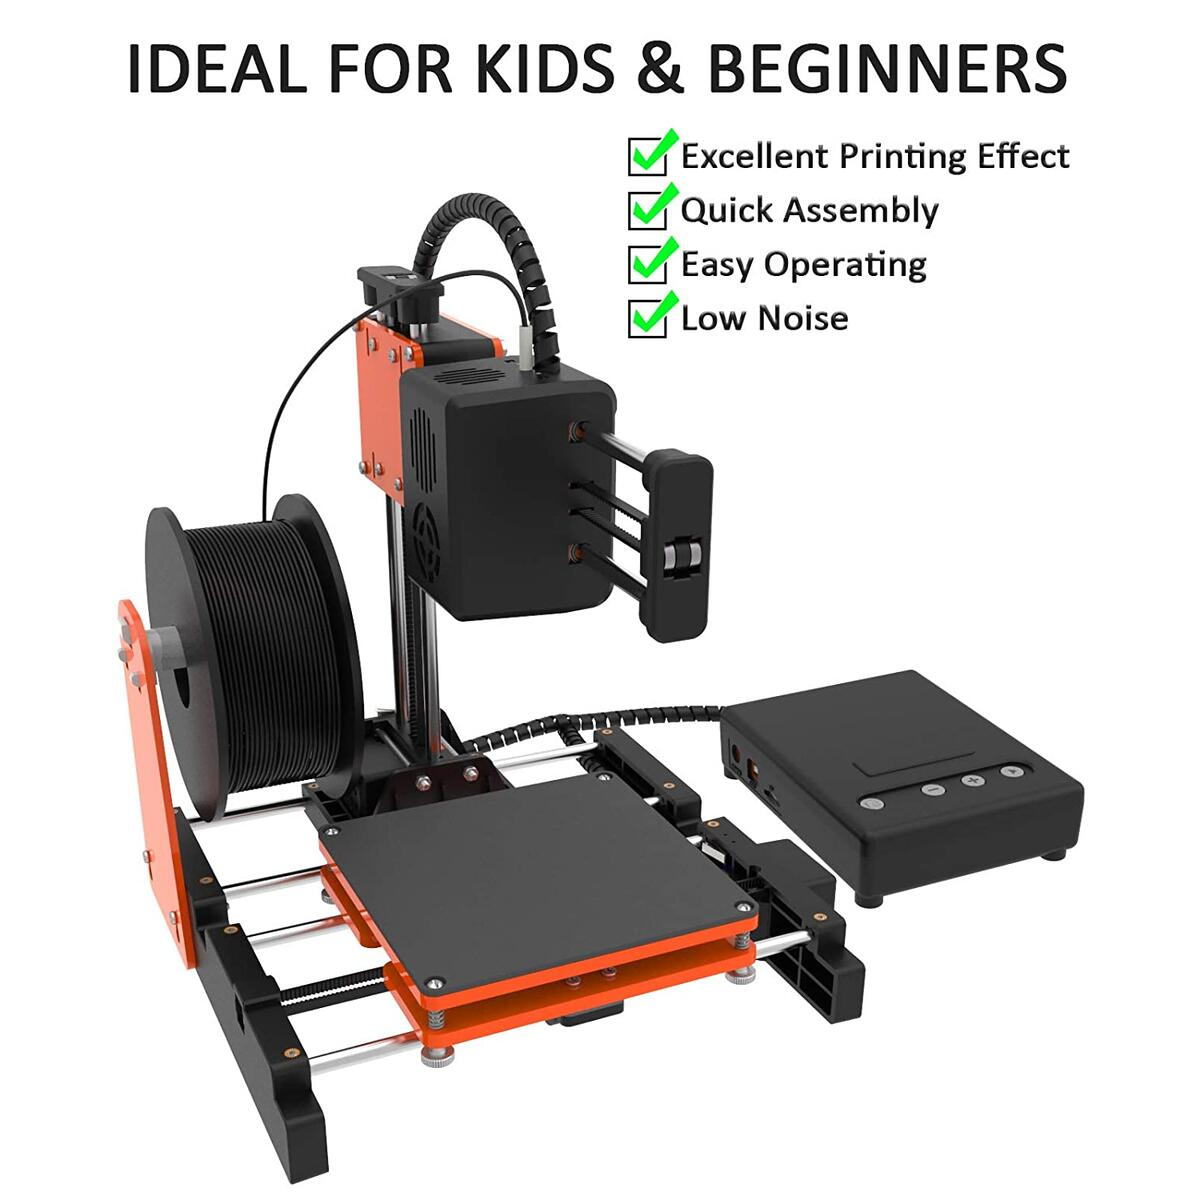 TTLIFE Mini 3D Printer for Kids & Beginners, Small 3D Printer with Magnetic Plate, Fast Heating, Low Noise, Printing Size 4